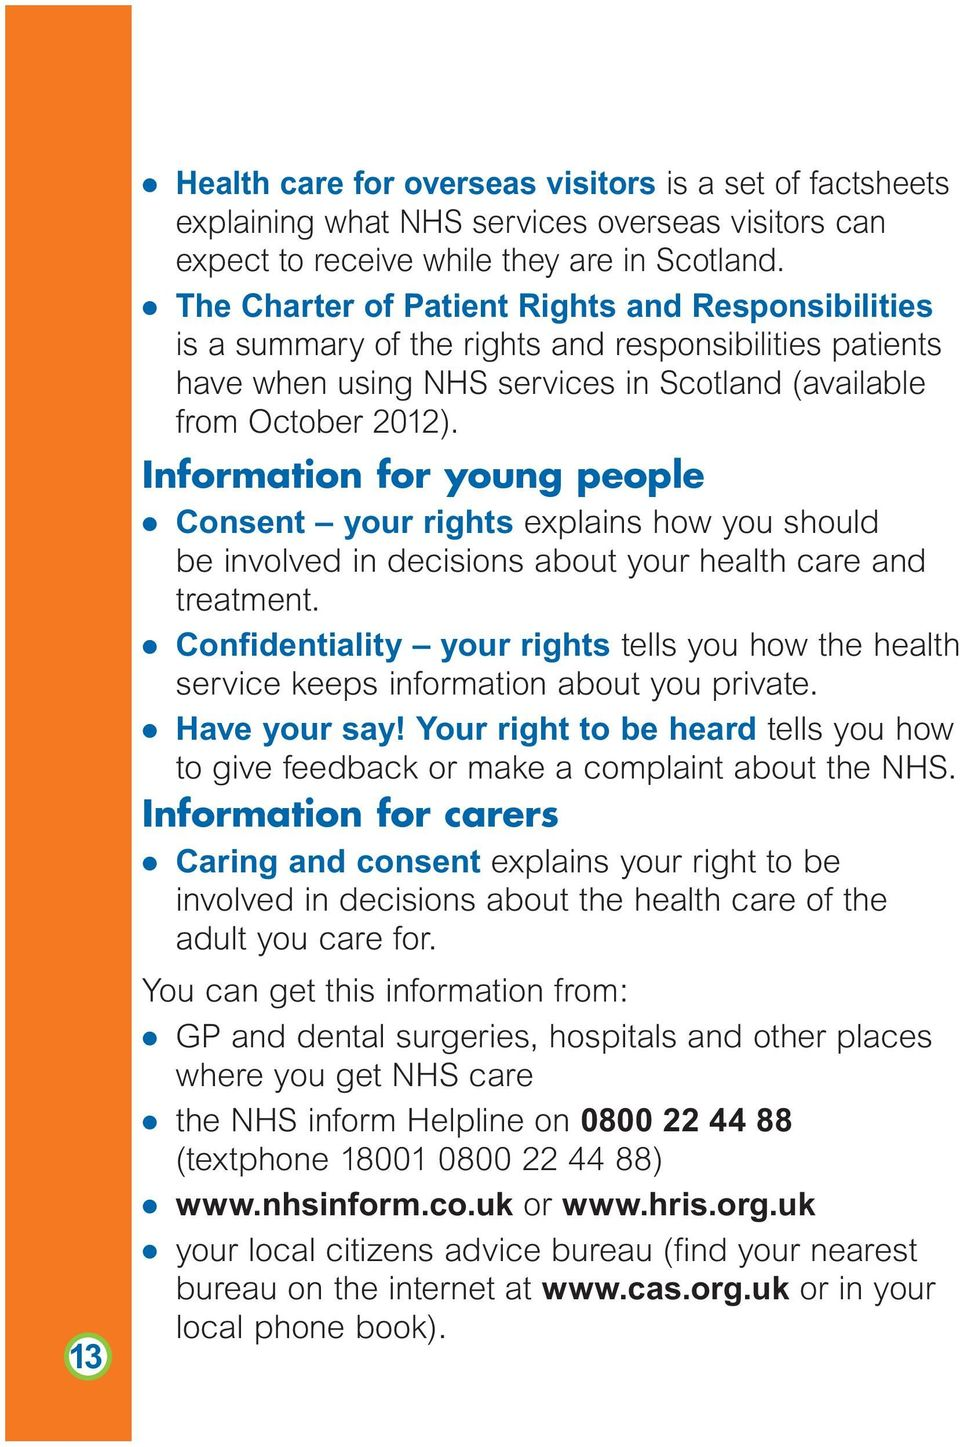 Information for young people l Consent your rights explains how you should be involved in decisions about your health care and treatment.